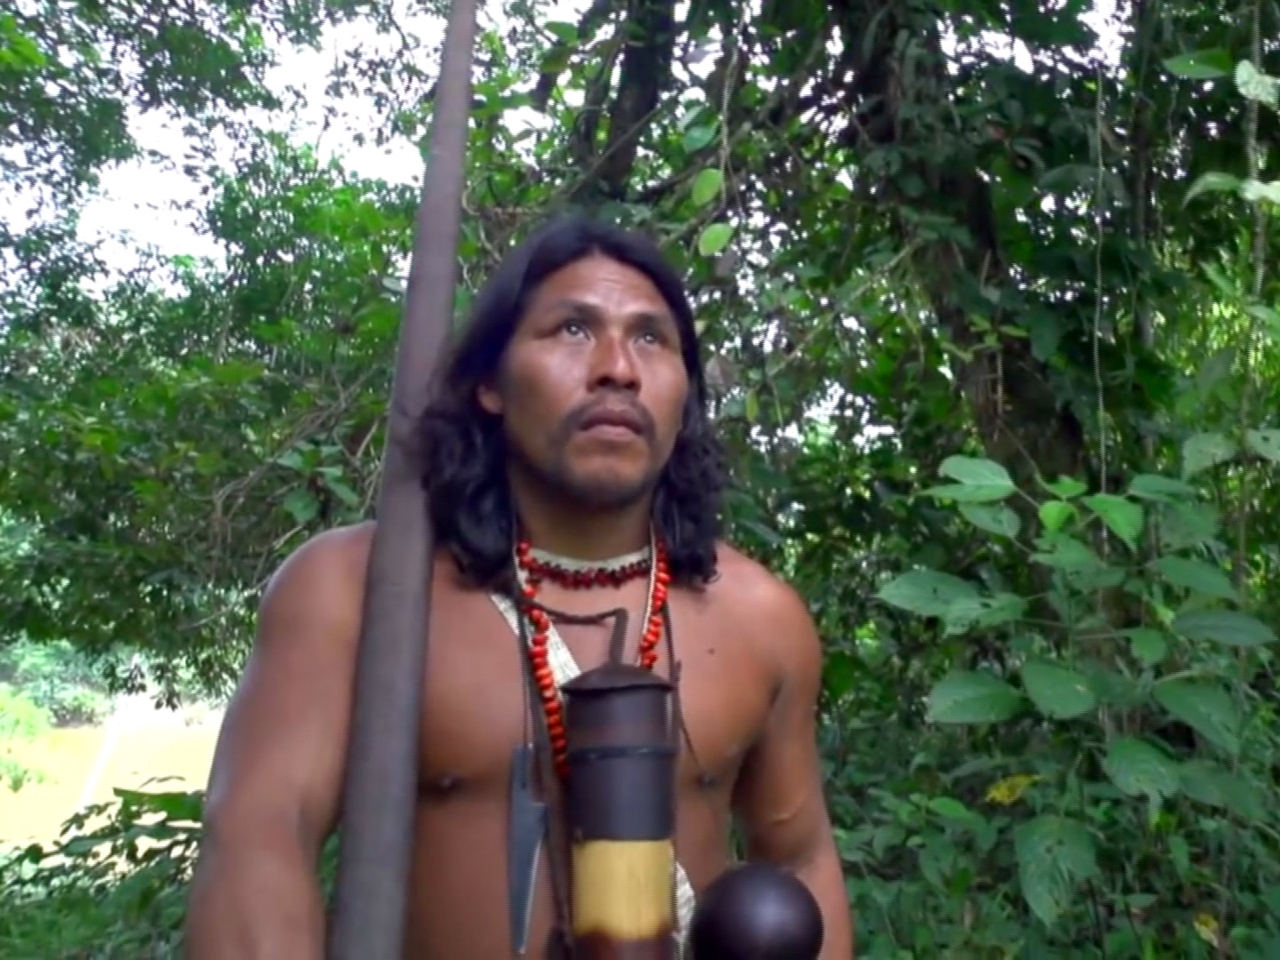 Tribes in Ecuador will fight rainforest auction